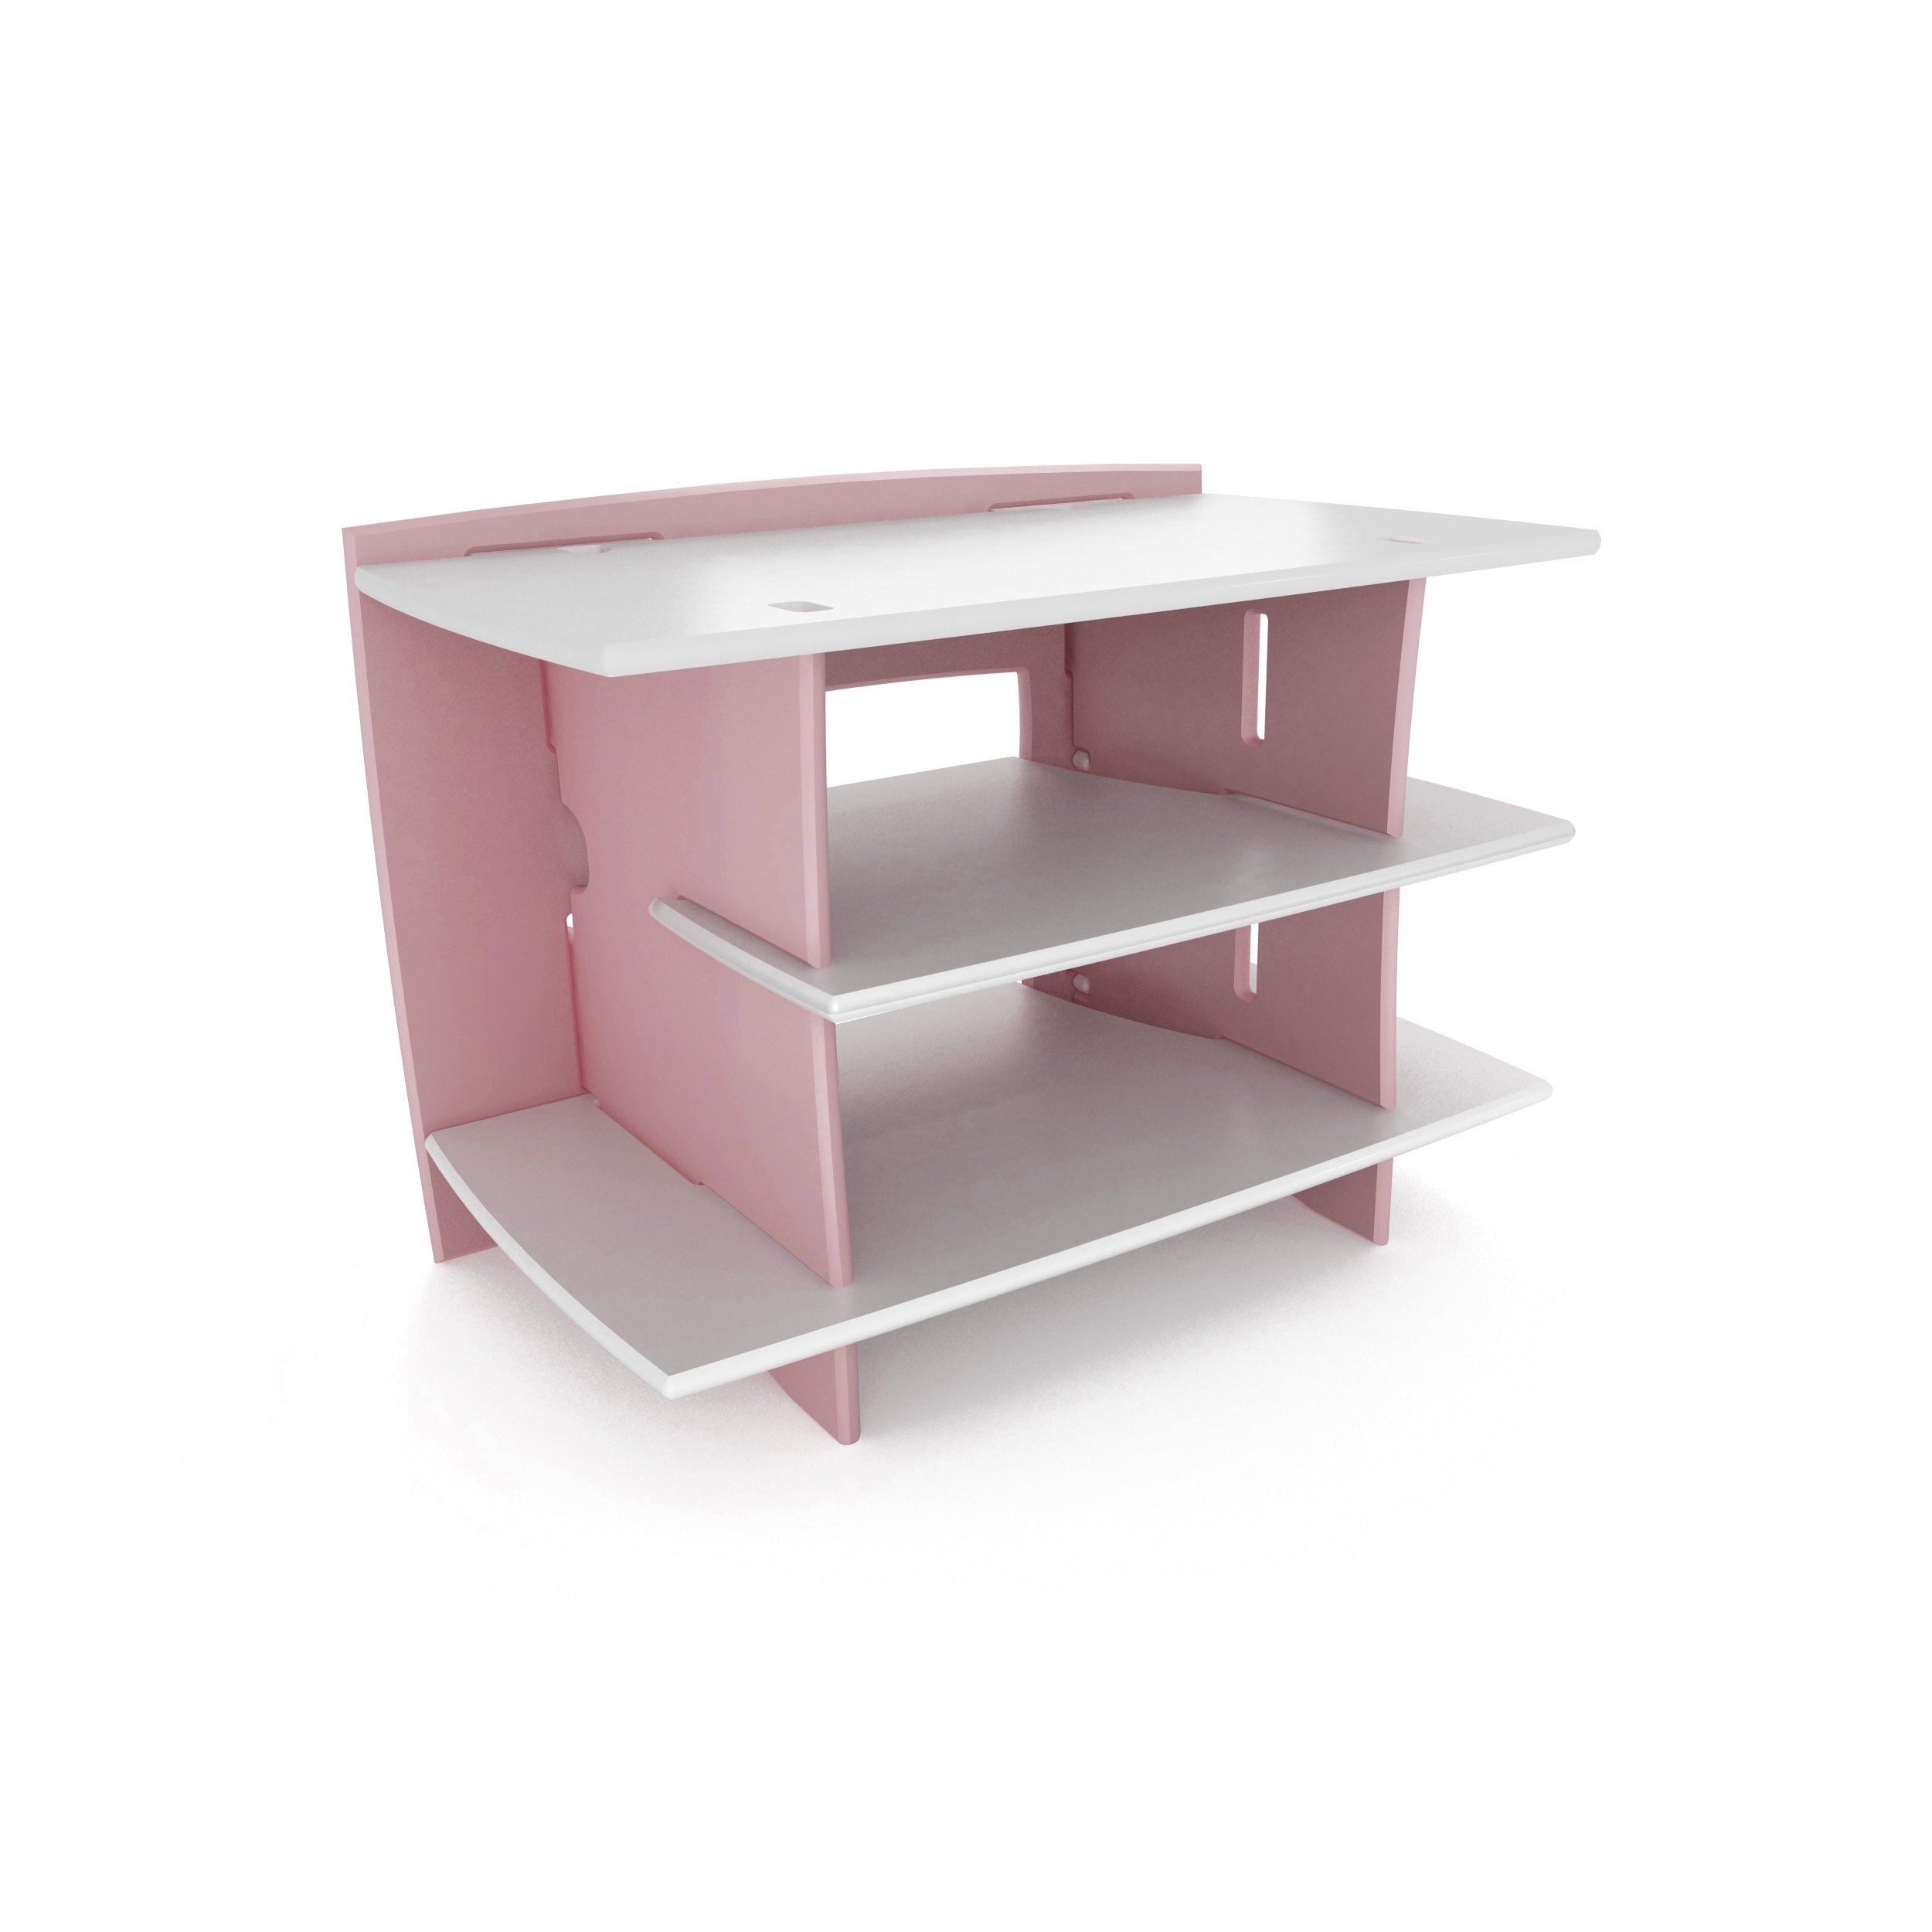 Legaré Kids Furniture Princess Series Collection, No Tools Assembly Gaming Center Stand, Pink and White